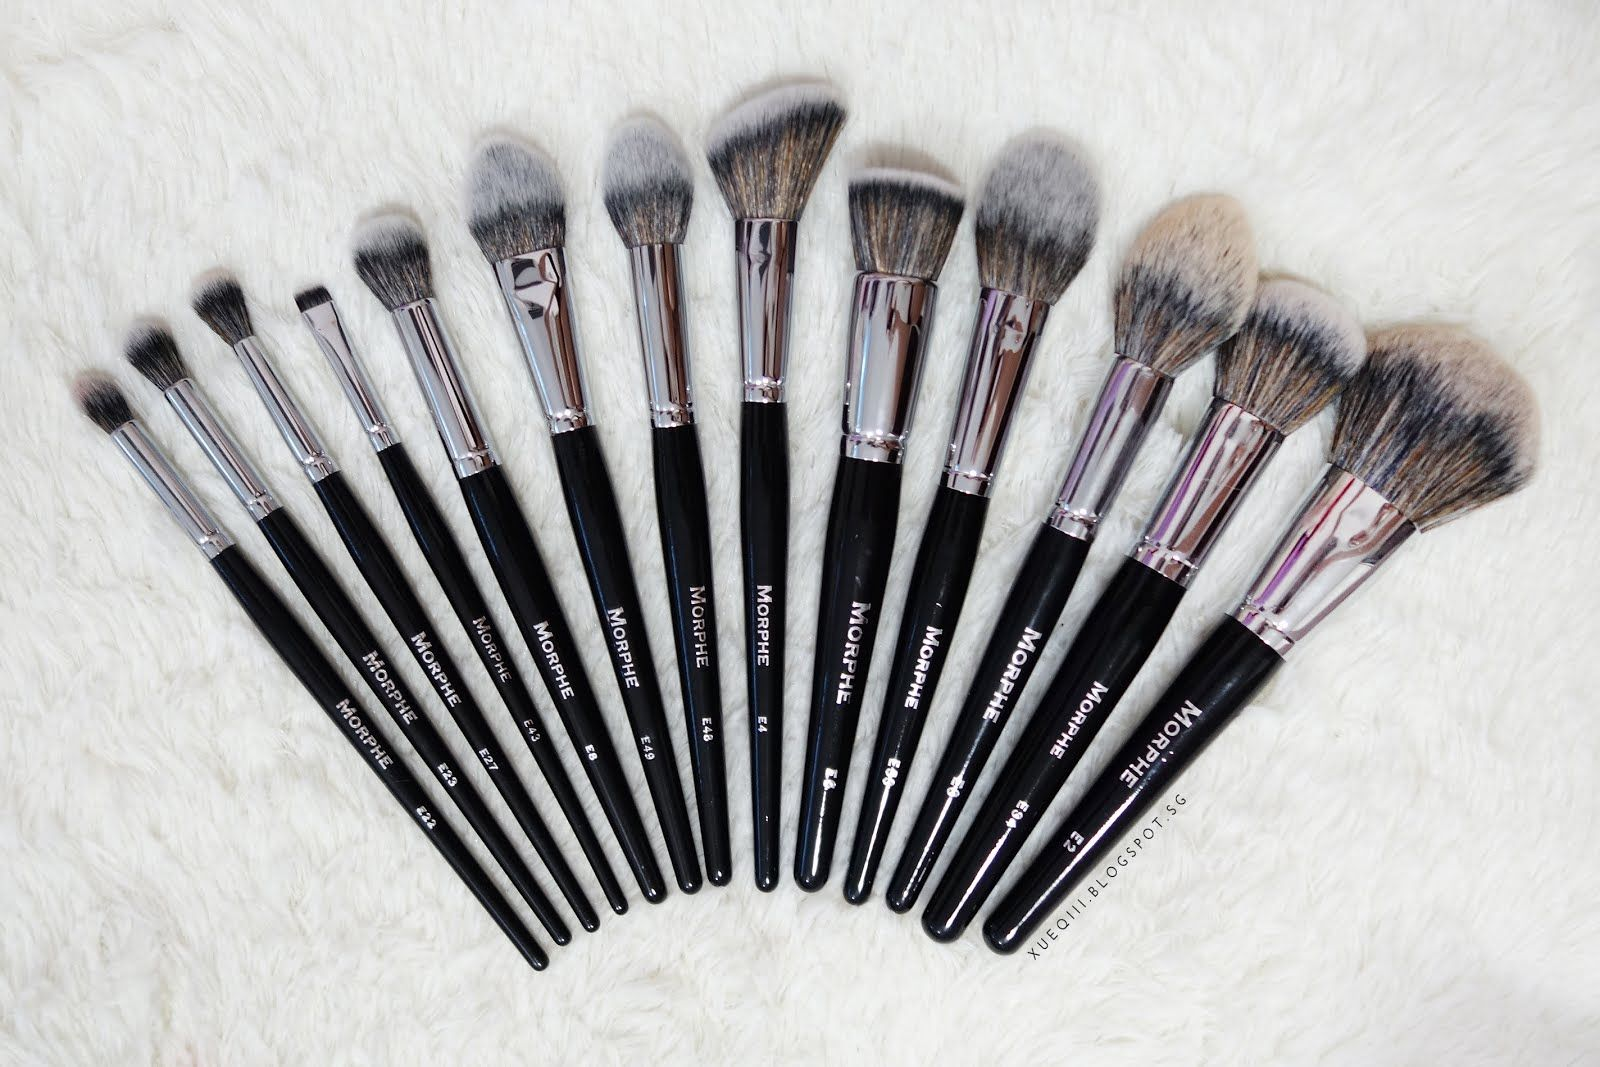 Morphe Brushes Elite Collection Review Makeup Brush Set Makeup Brushes Morphe Brushes Set